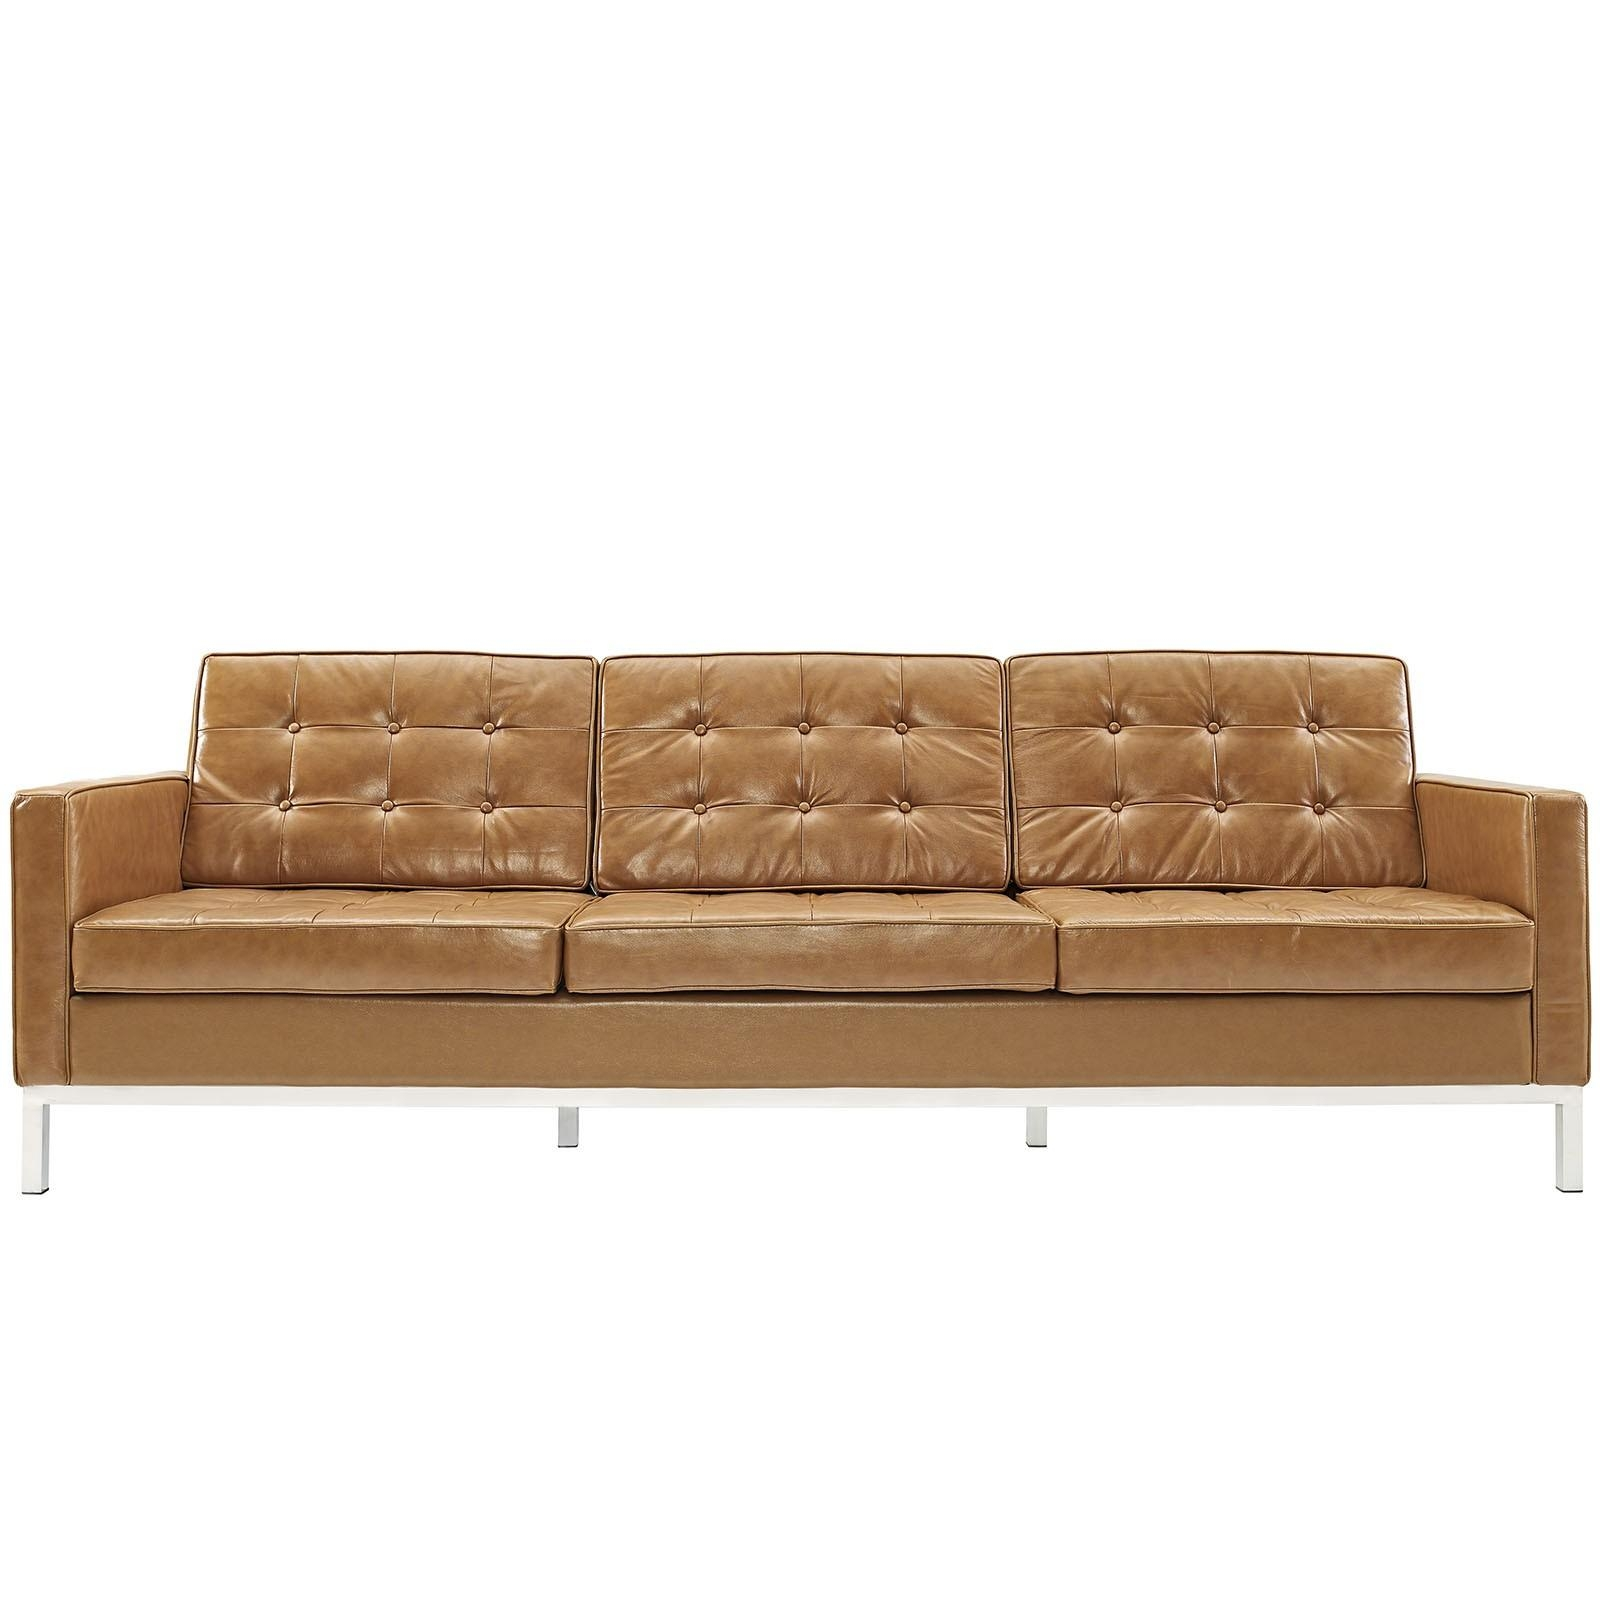 best florence knoll sofa reproduction leicester city chelsea sofascore 20 ideas leather sofas